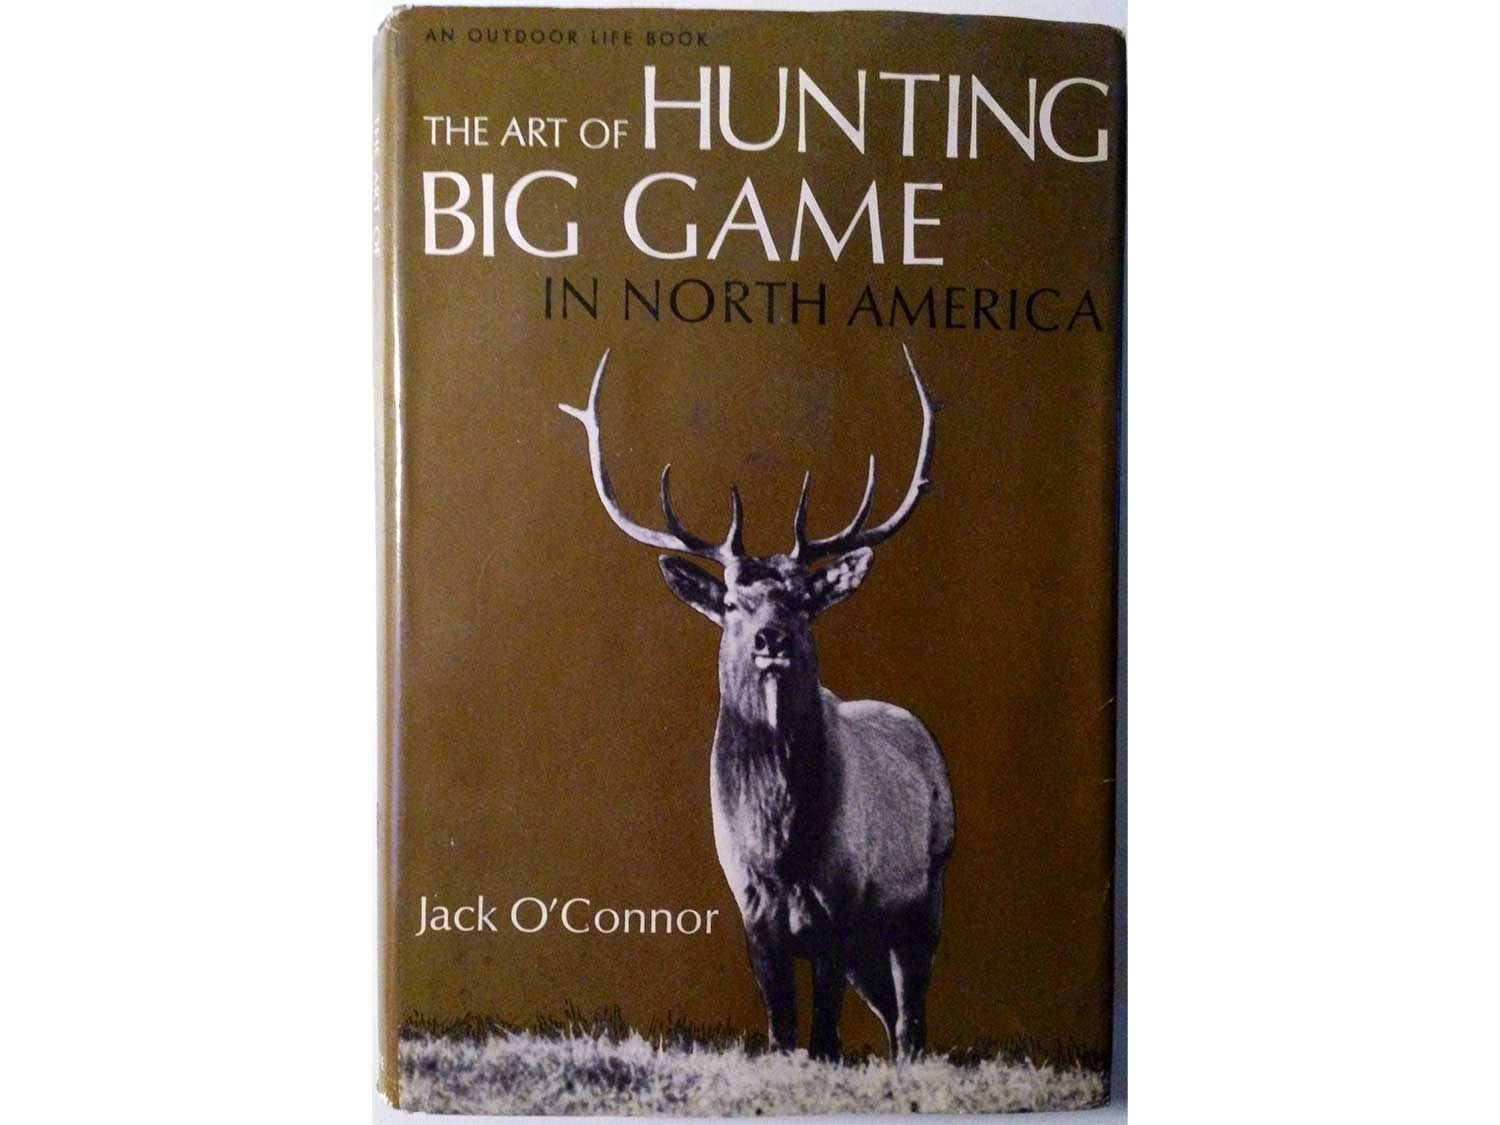 The Art of Hunting Big Game in North America by Jack O'Connor